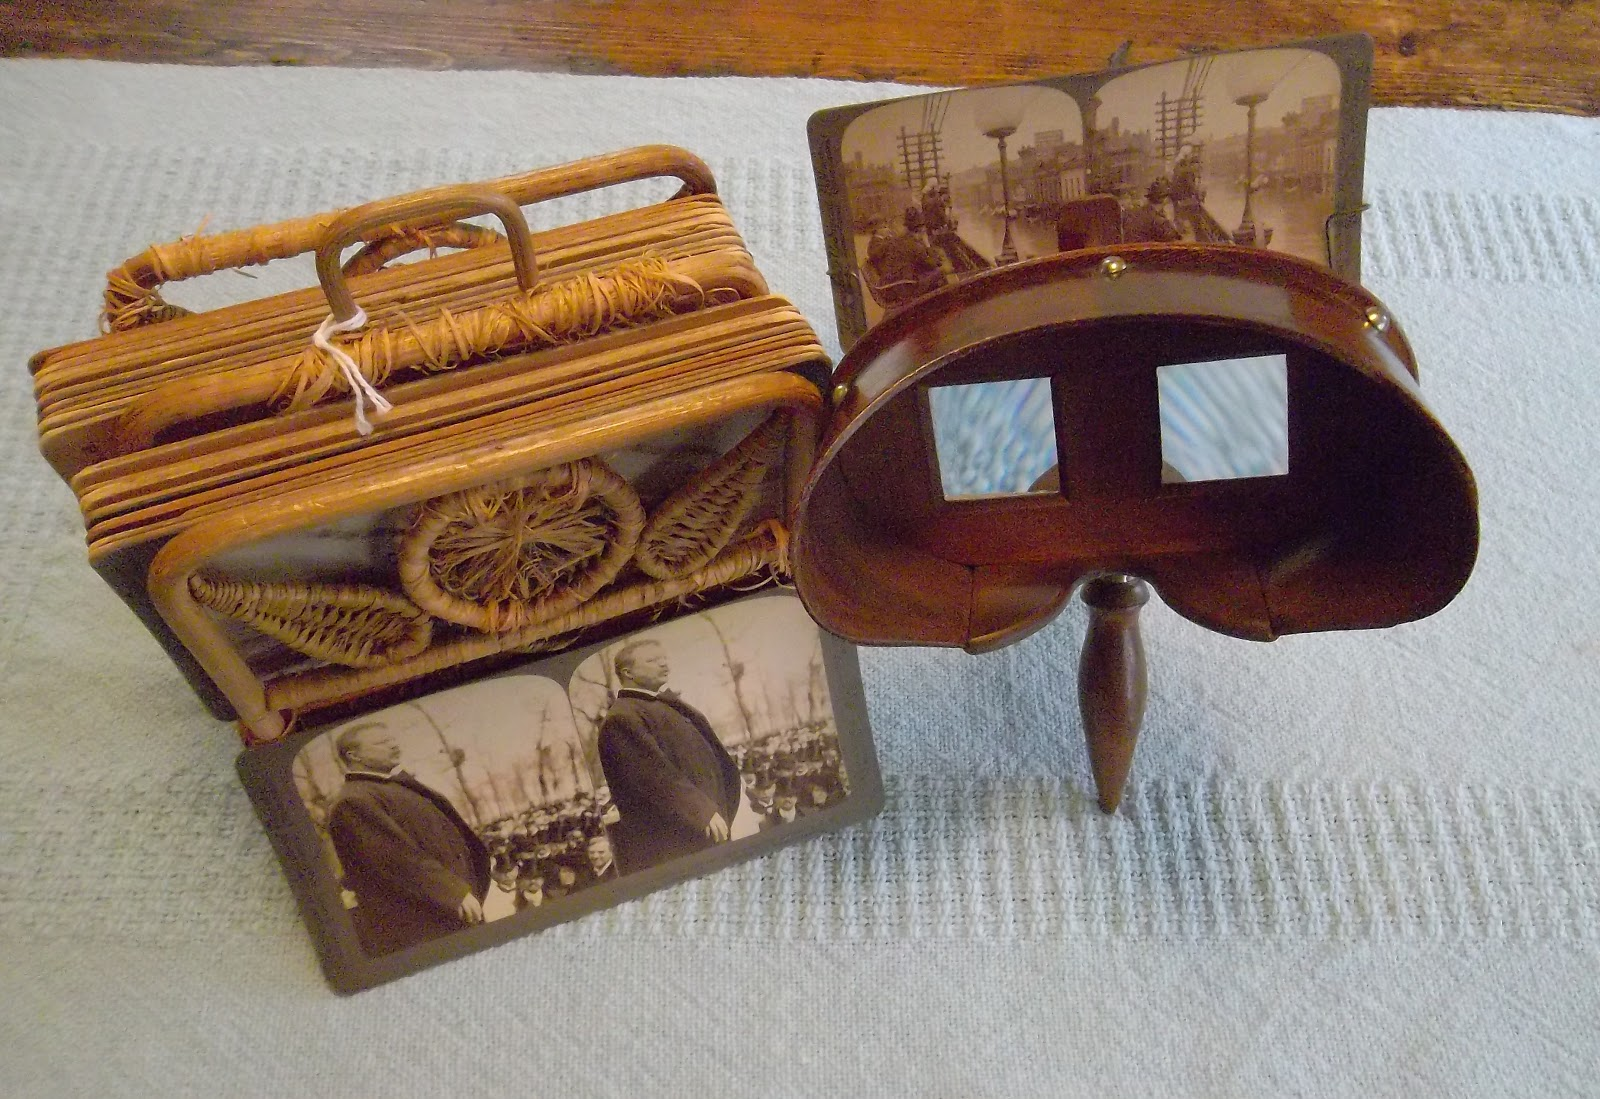 It Was This Version Of The Stereoscope That Minnie Received As A Birthday And Christmas Gift In 1897